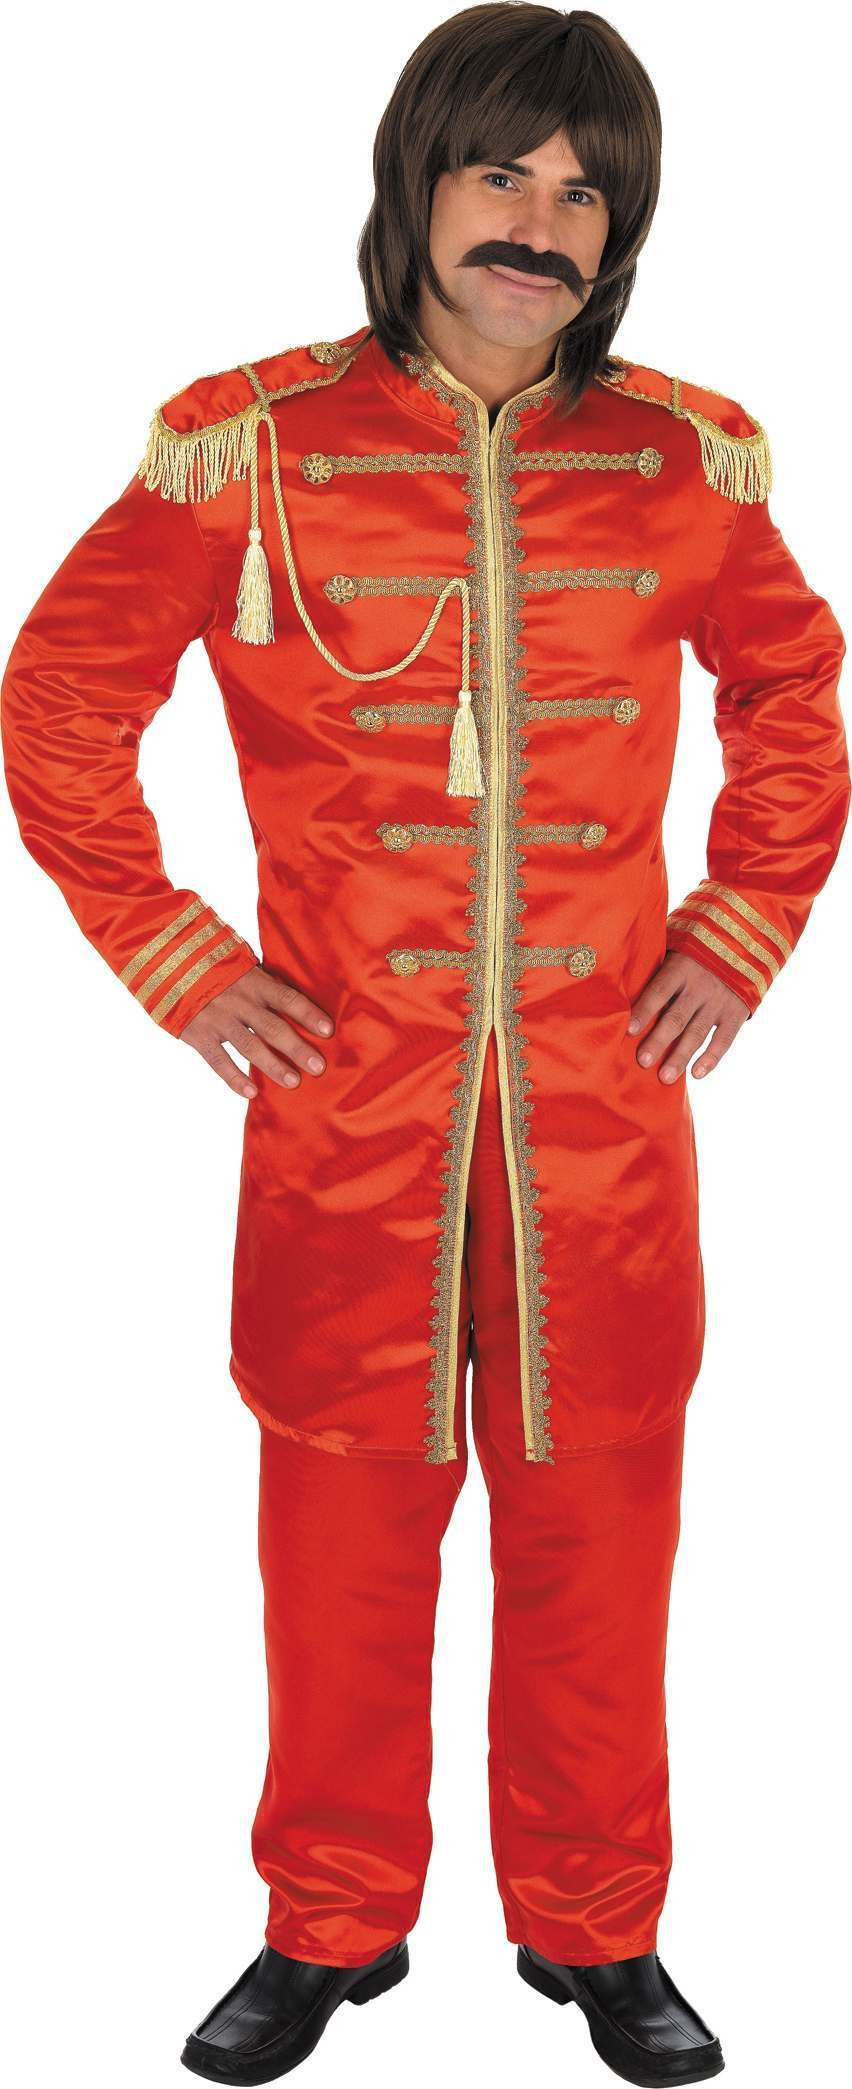 Red Pop Sergeant Fancy Dress Costume